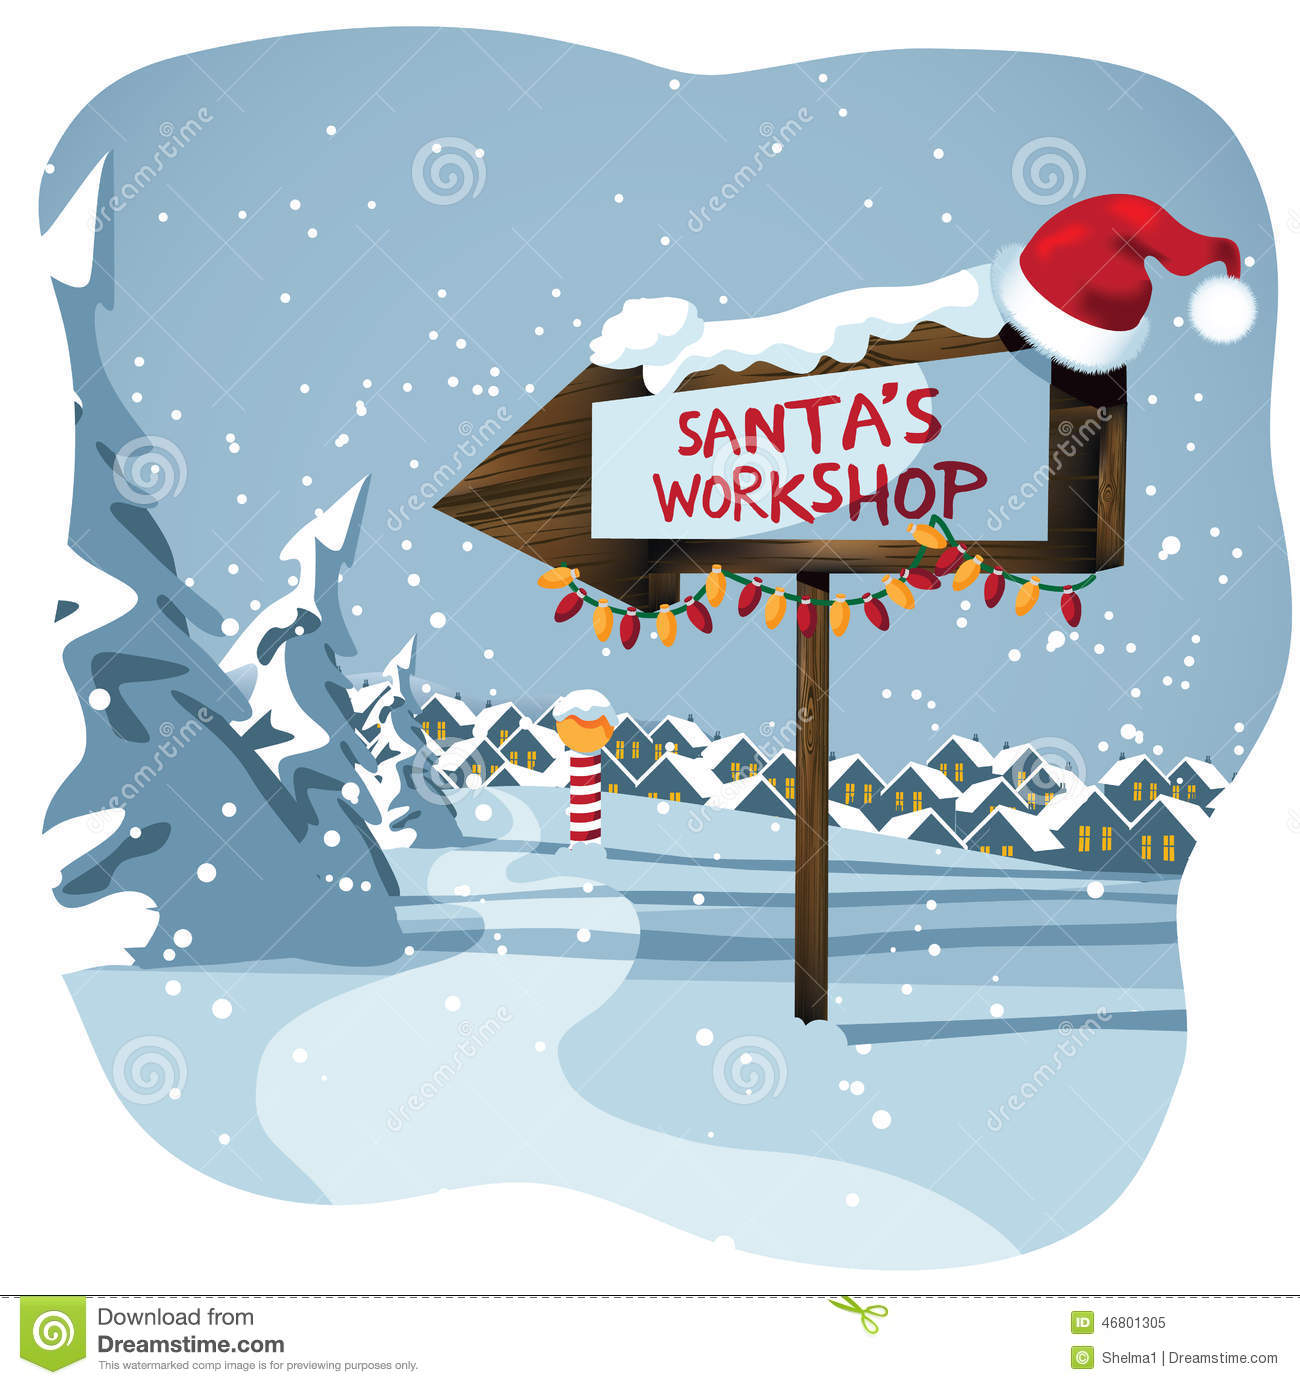 Santa's workshop sign at the north poleEPS 10 vector illustration.